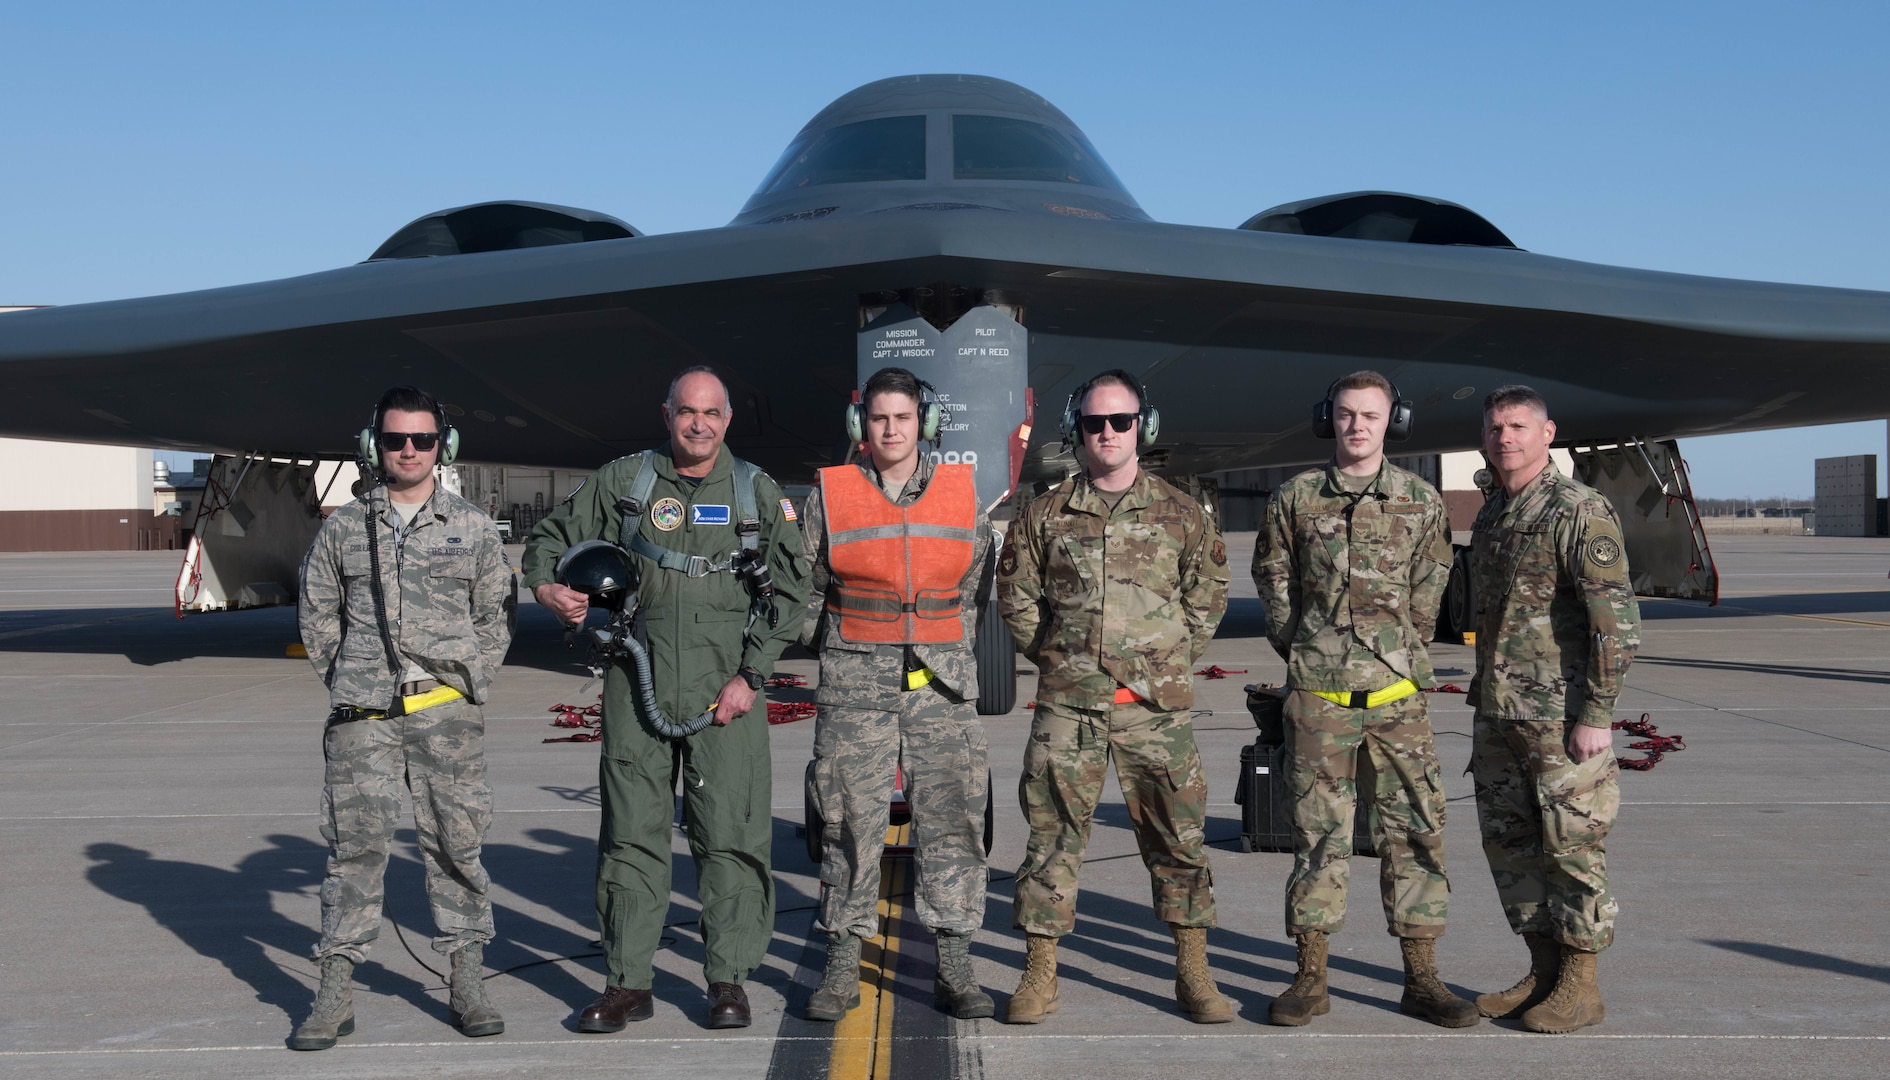 Richard and McMahon interacted with Airmen at Whiteman AFB and shared their perspectives on the strategic deterrence mission. (U.S. Air Force Photo by Airman 1st Class Thomas Johns)